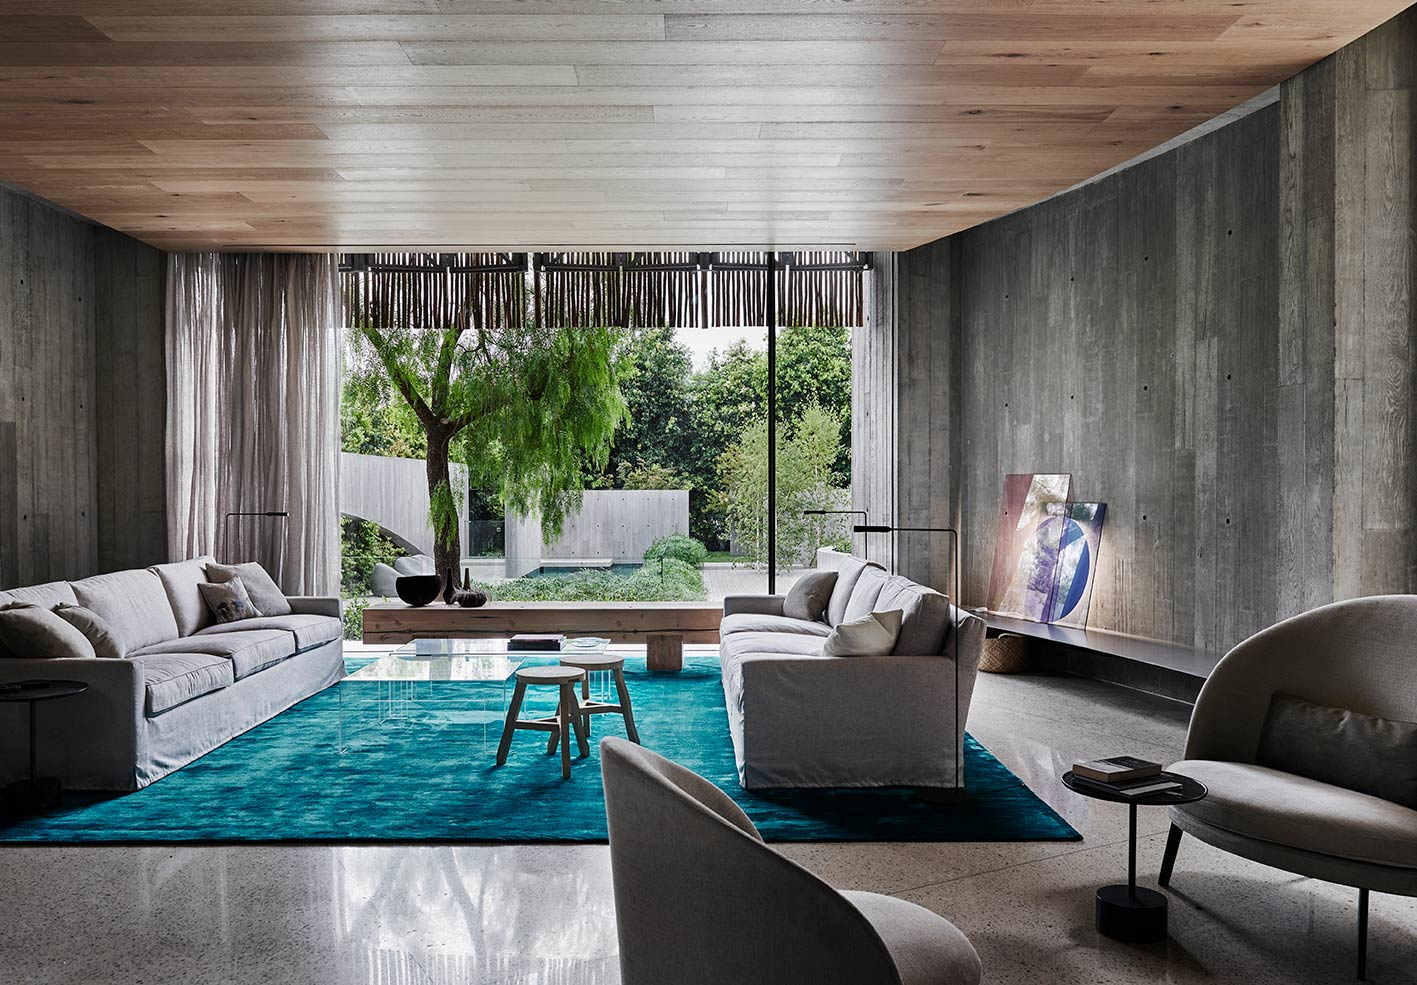 Australian Interior Design Awards reveals country's best homes